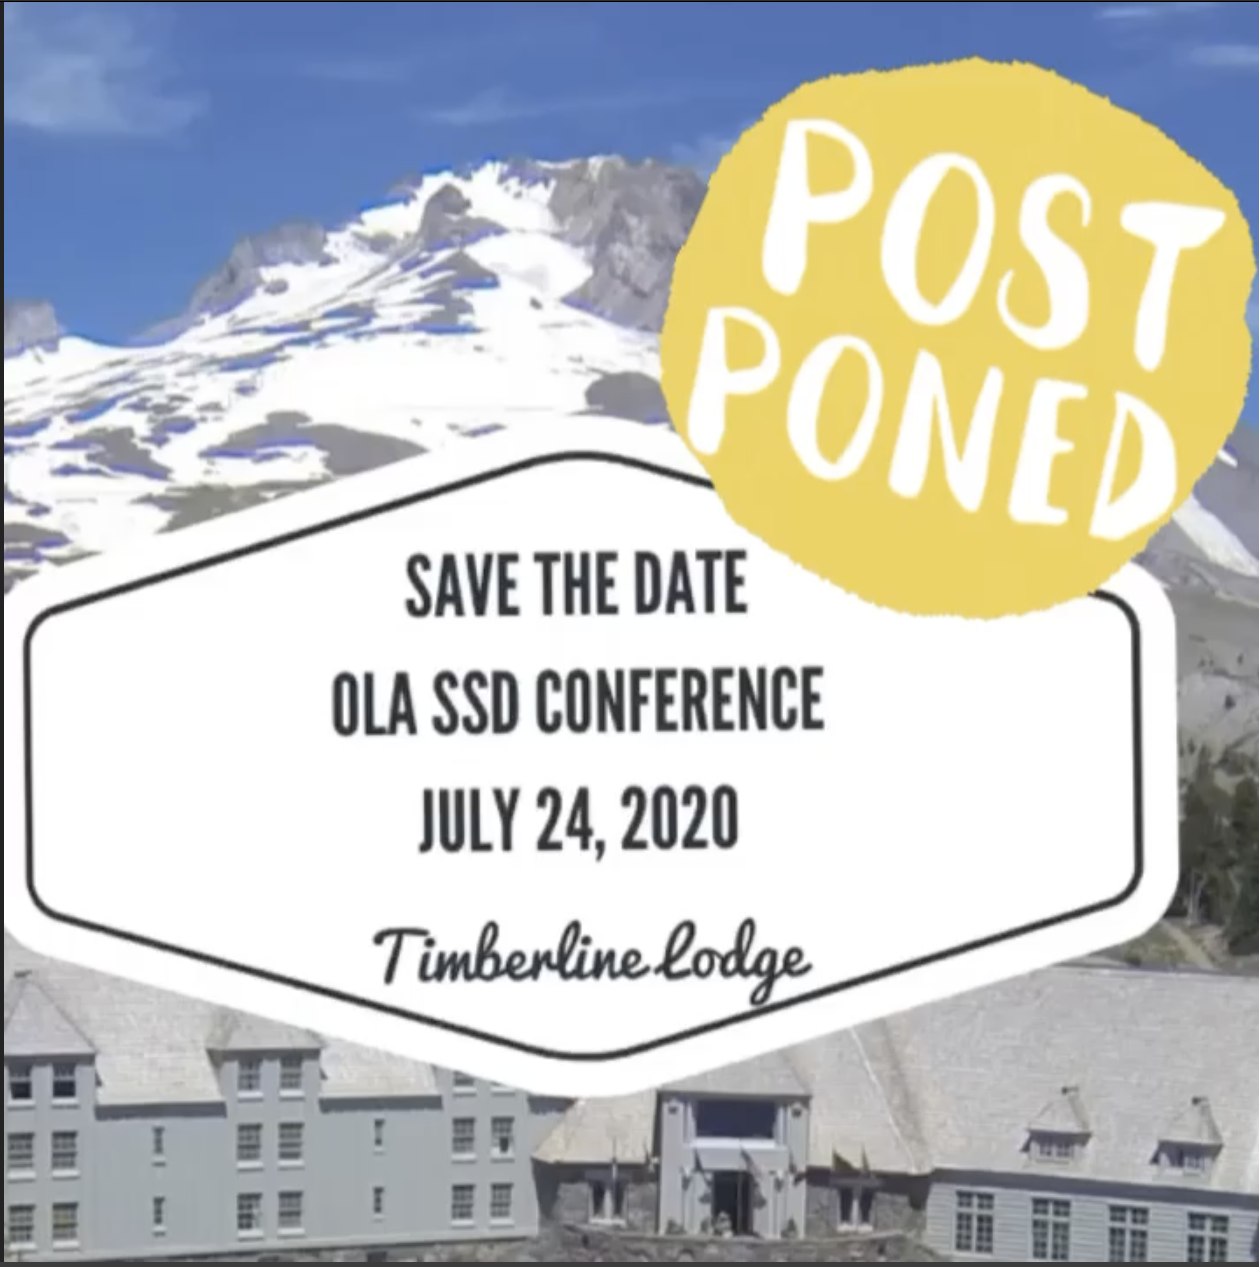 SSD Conference 2020, July 24, 2020, Timberline Lodge